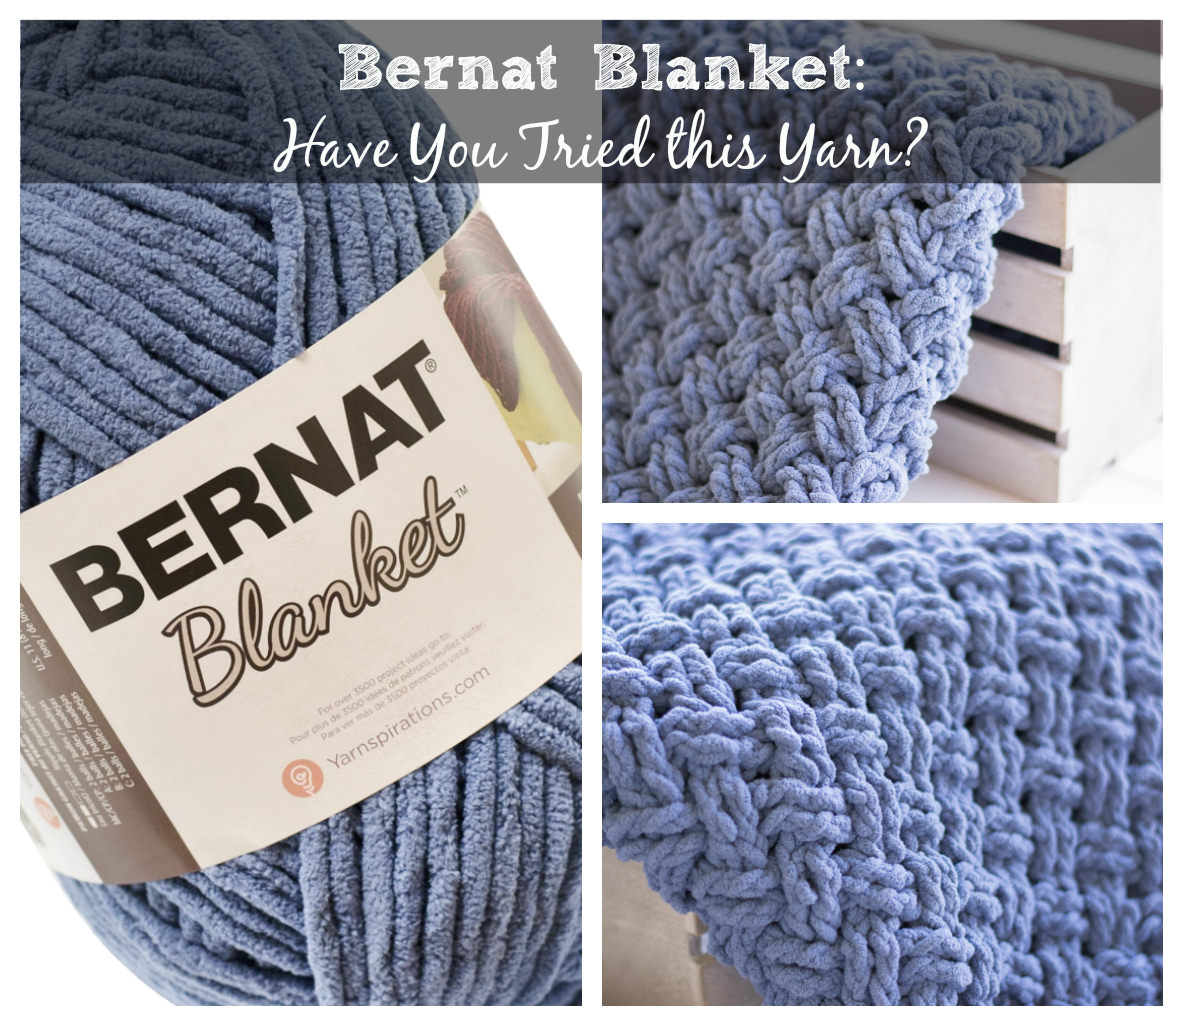 Free Knitting Patterns For Bernat Blanket Yarn : Bernat Blanket: Have you tried this yarn?   The Crochet Cafe